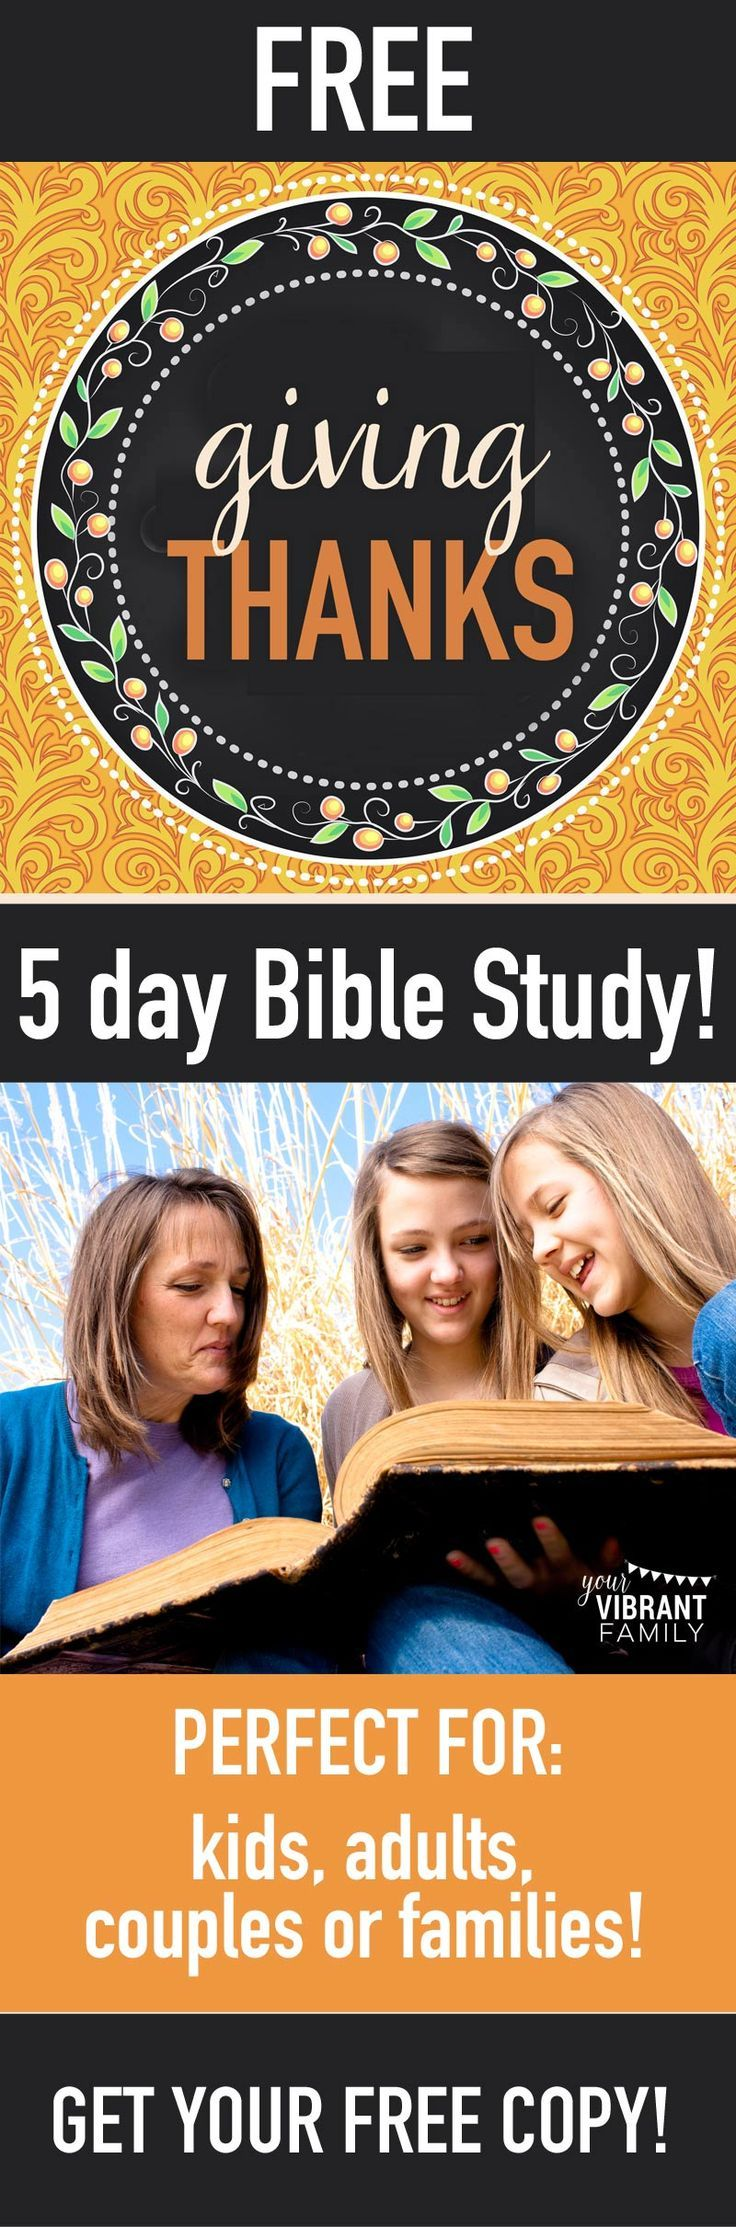 What is Thanksgiving to You? Bible study on thanksgiving.